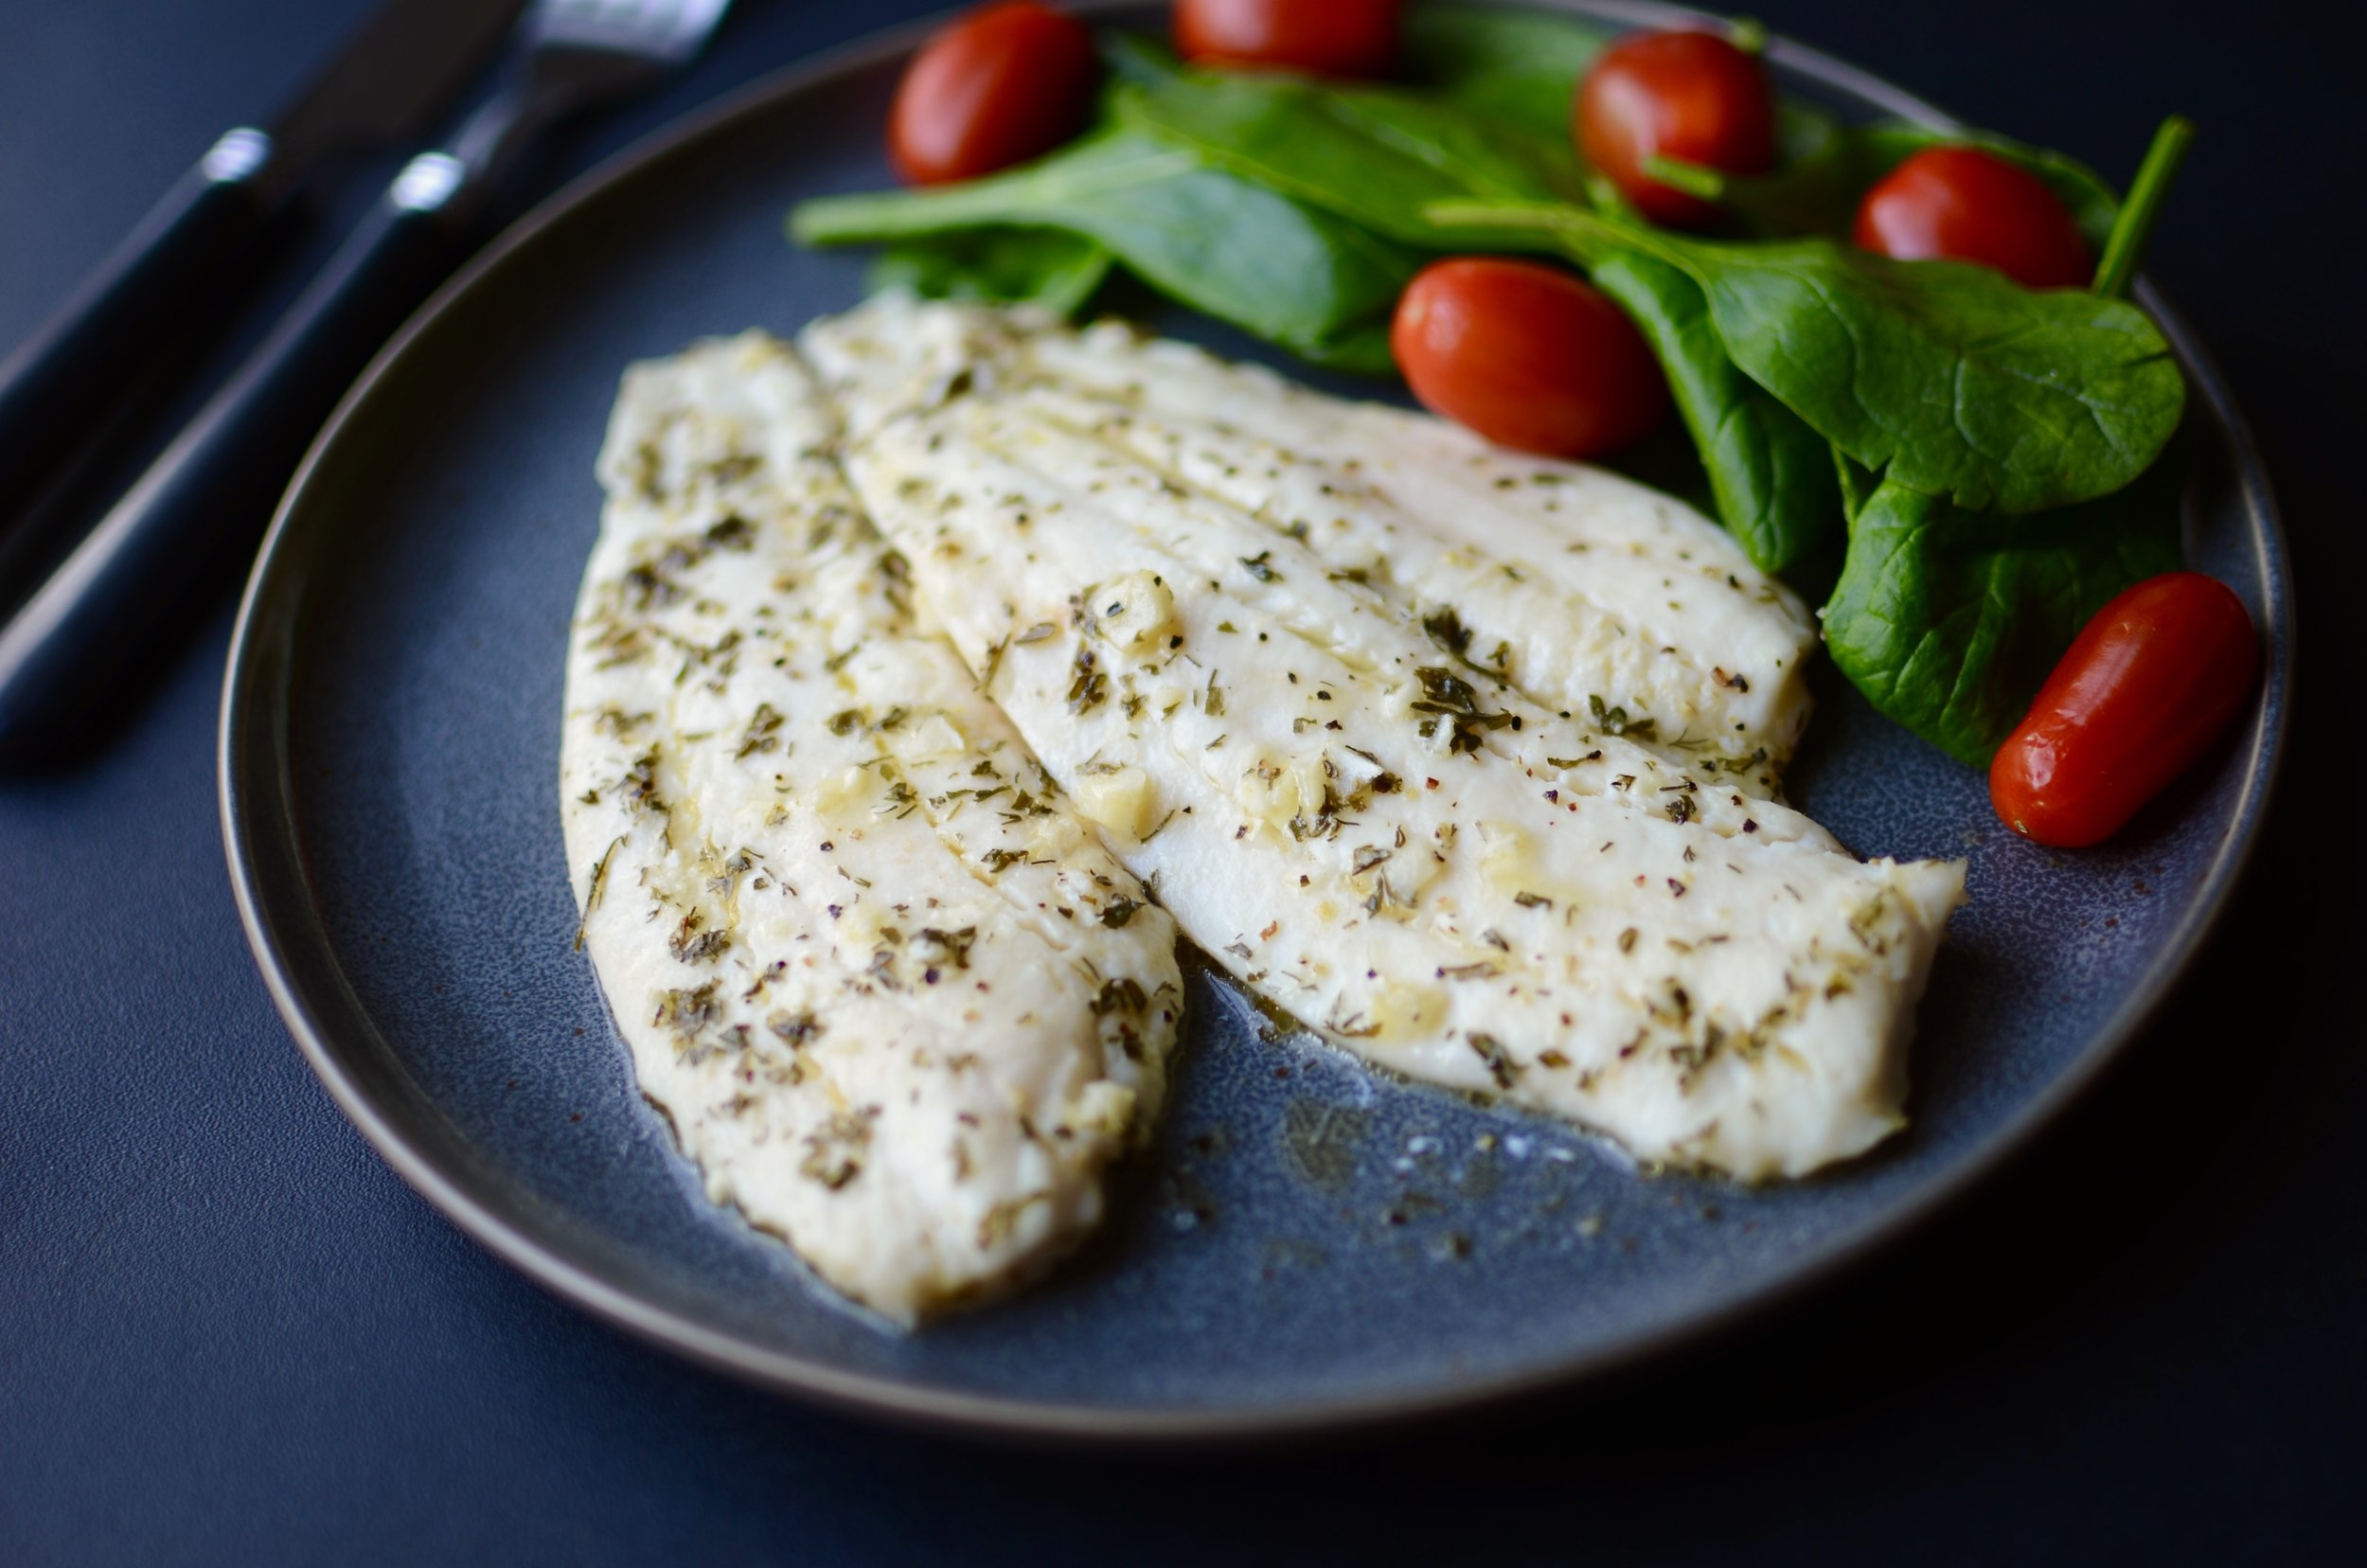 Oven Baked Flounder with Lemon and Dill recipe. how to make flounder. delicious flounder recipe. how to cook flounder. cooking flounder in the oven. baking flounder. flounder recipe. recipe for flounder fillets. how to cook flounder fillets?